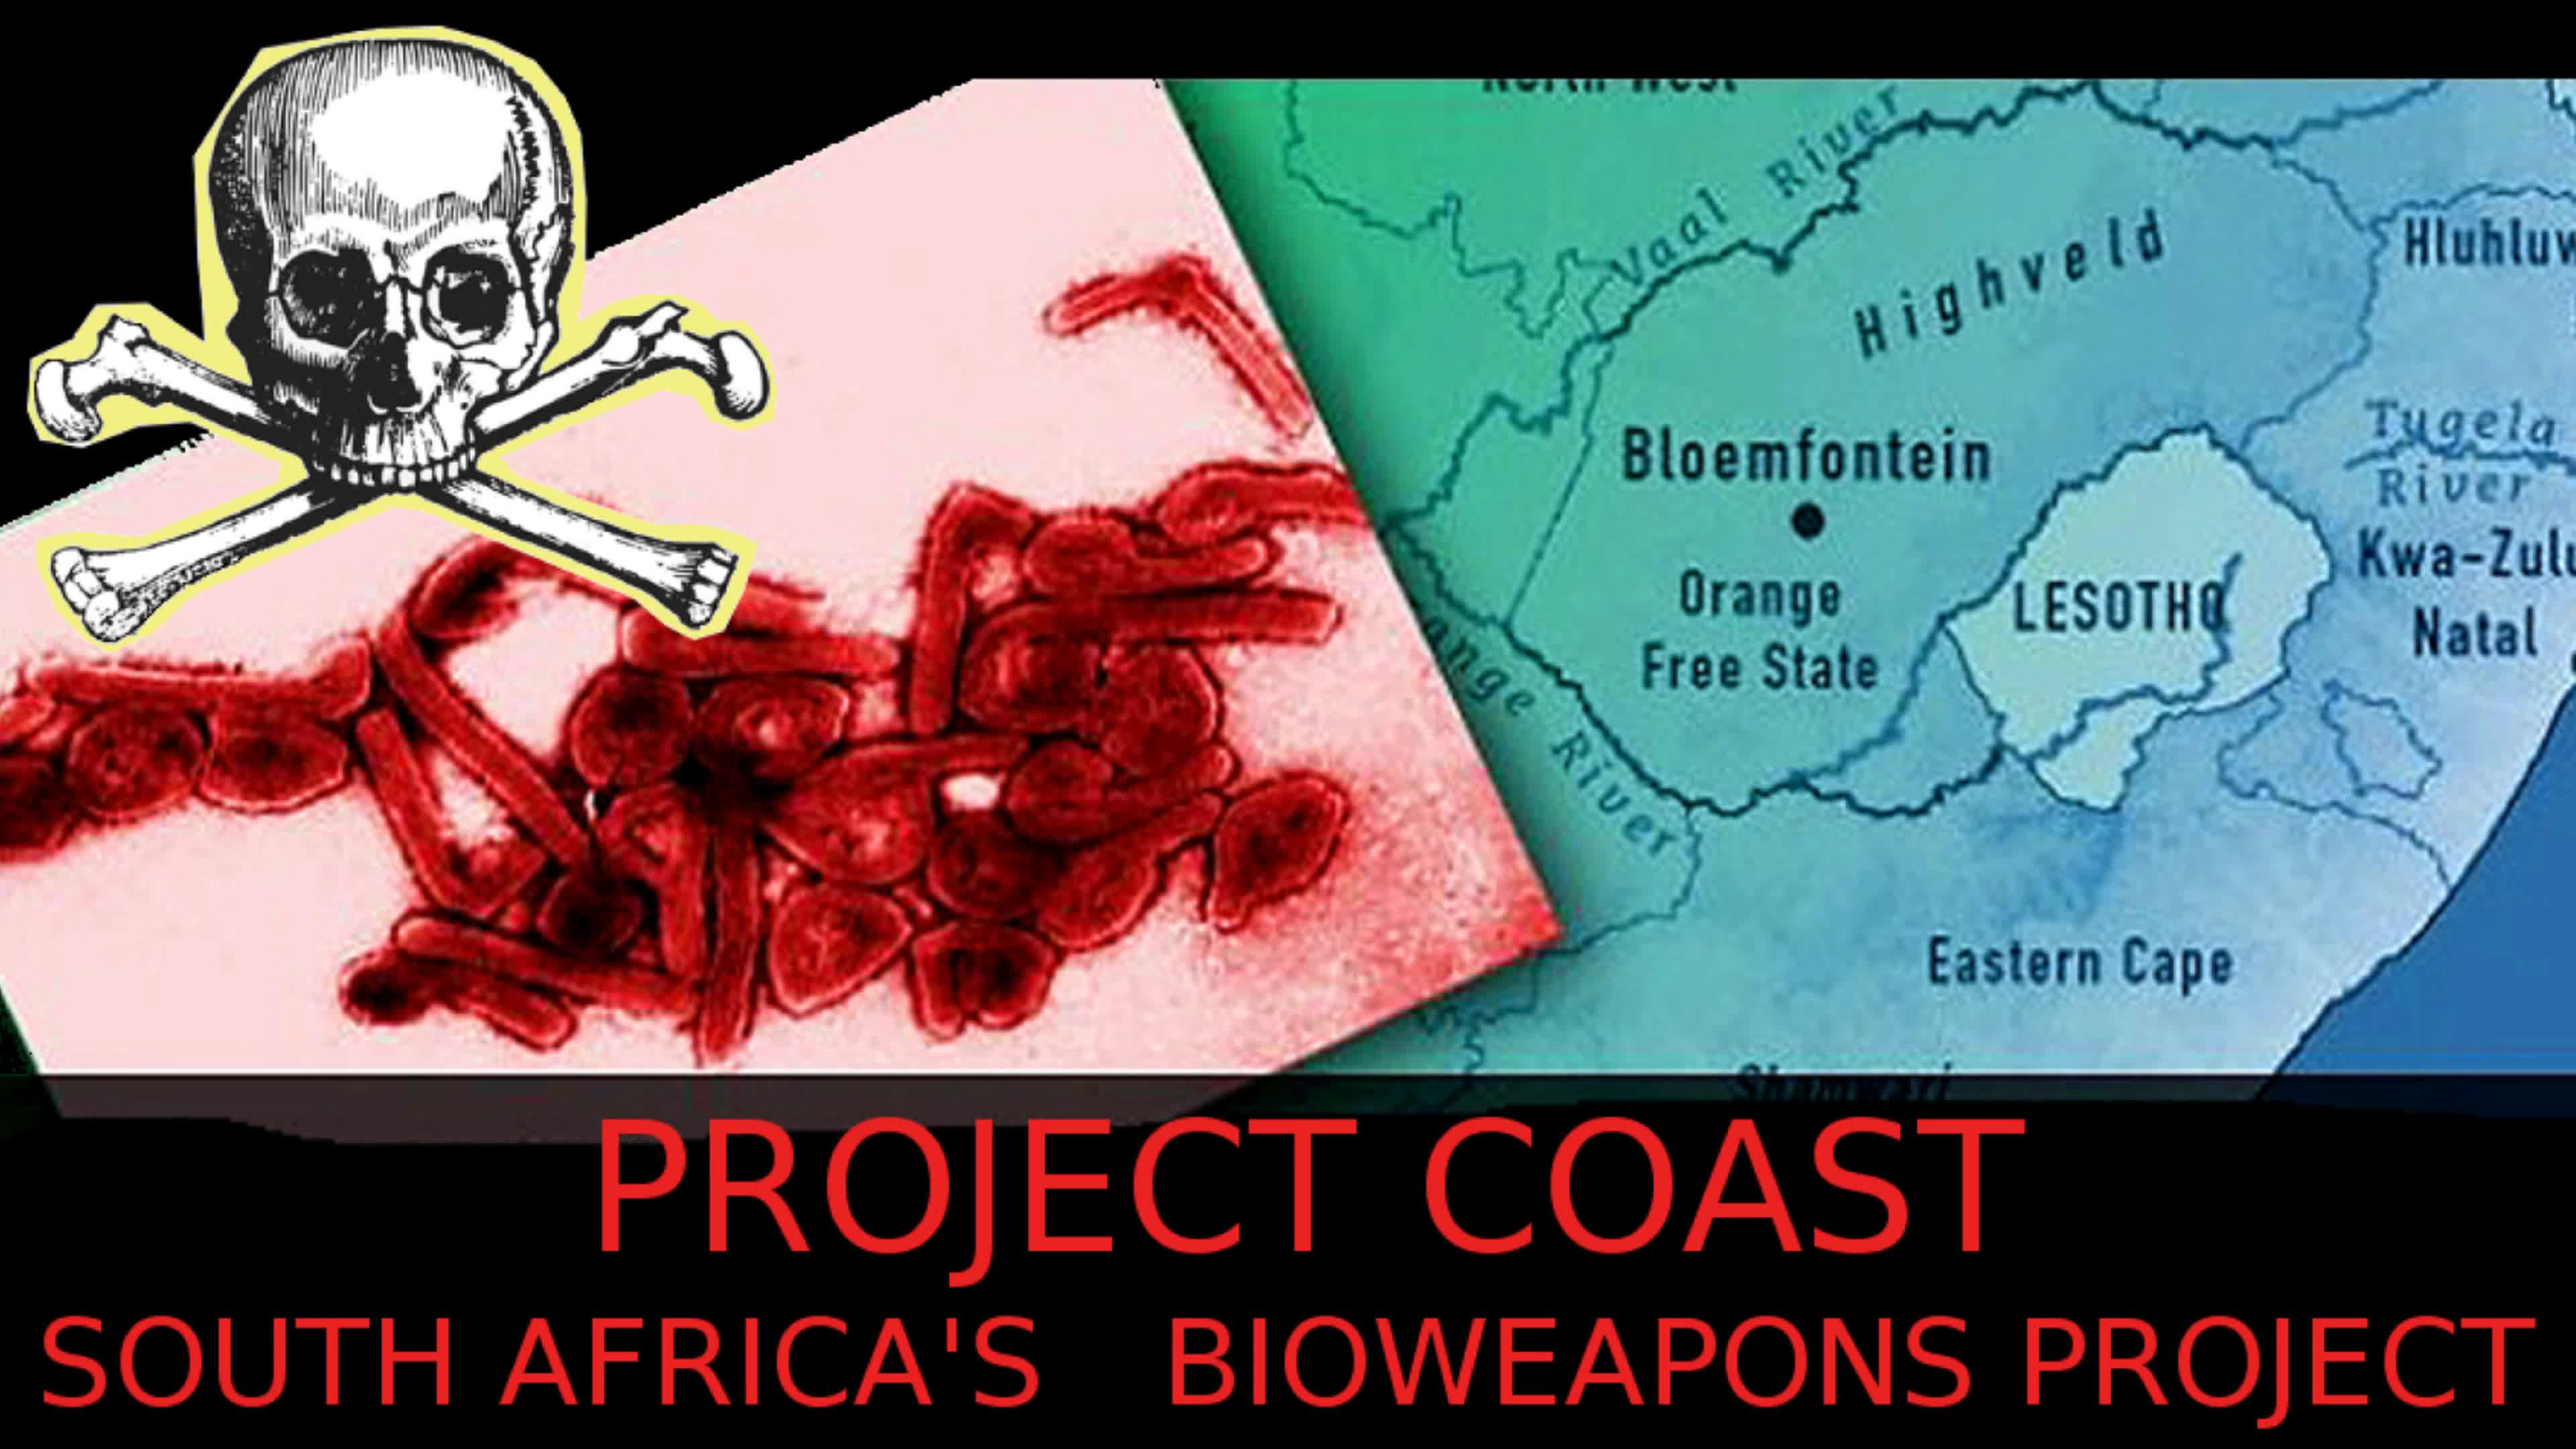 Project Coast: South Africa's Bioweapons program